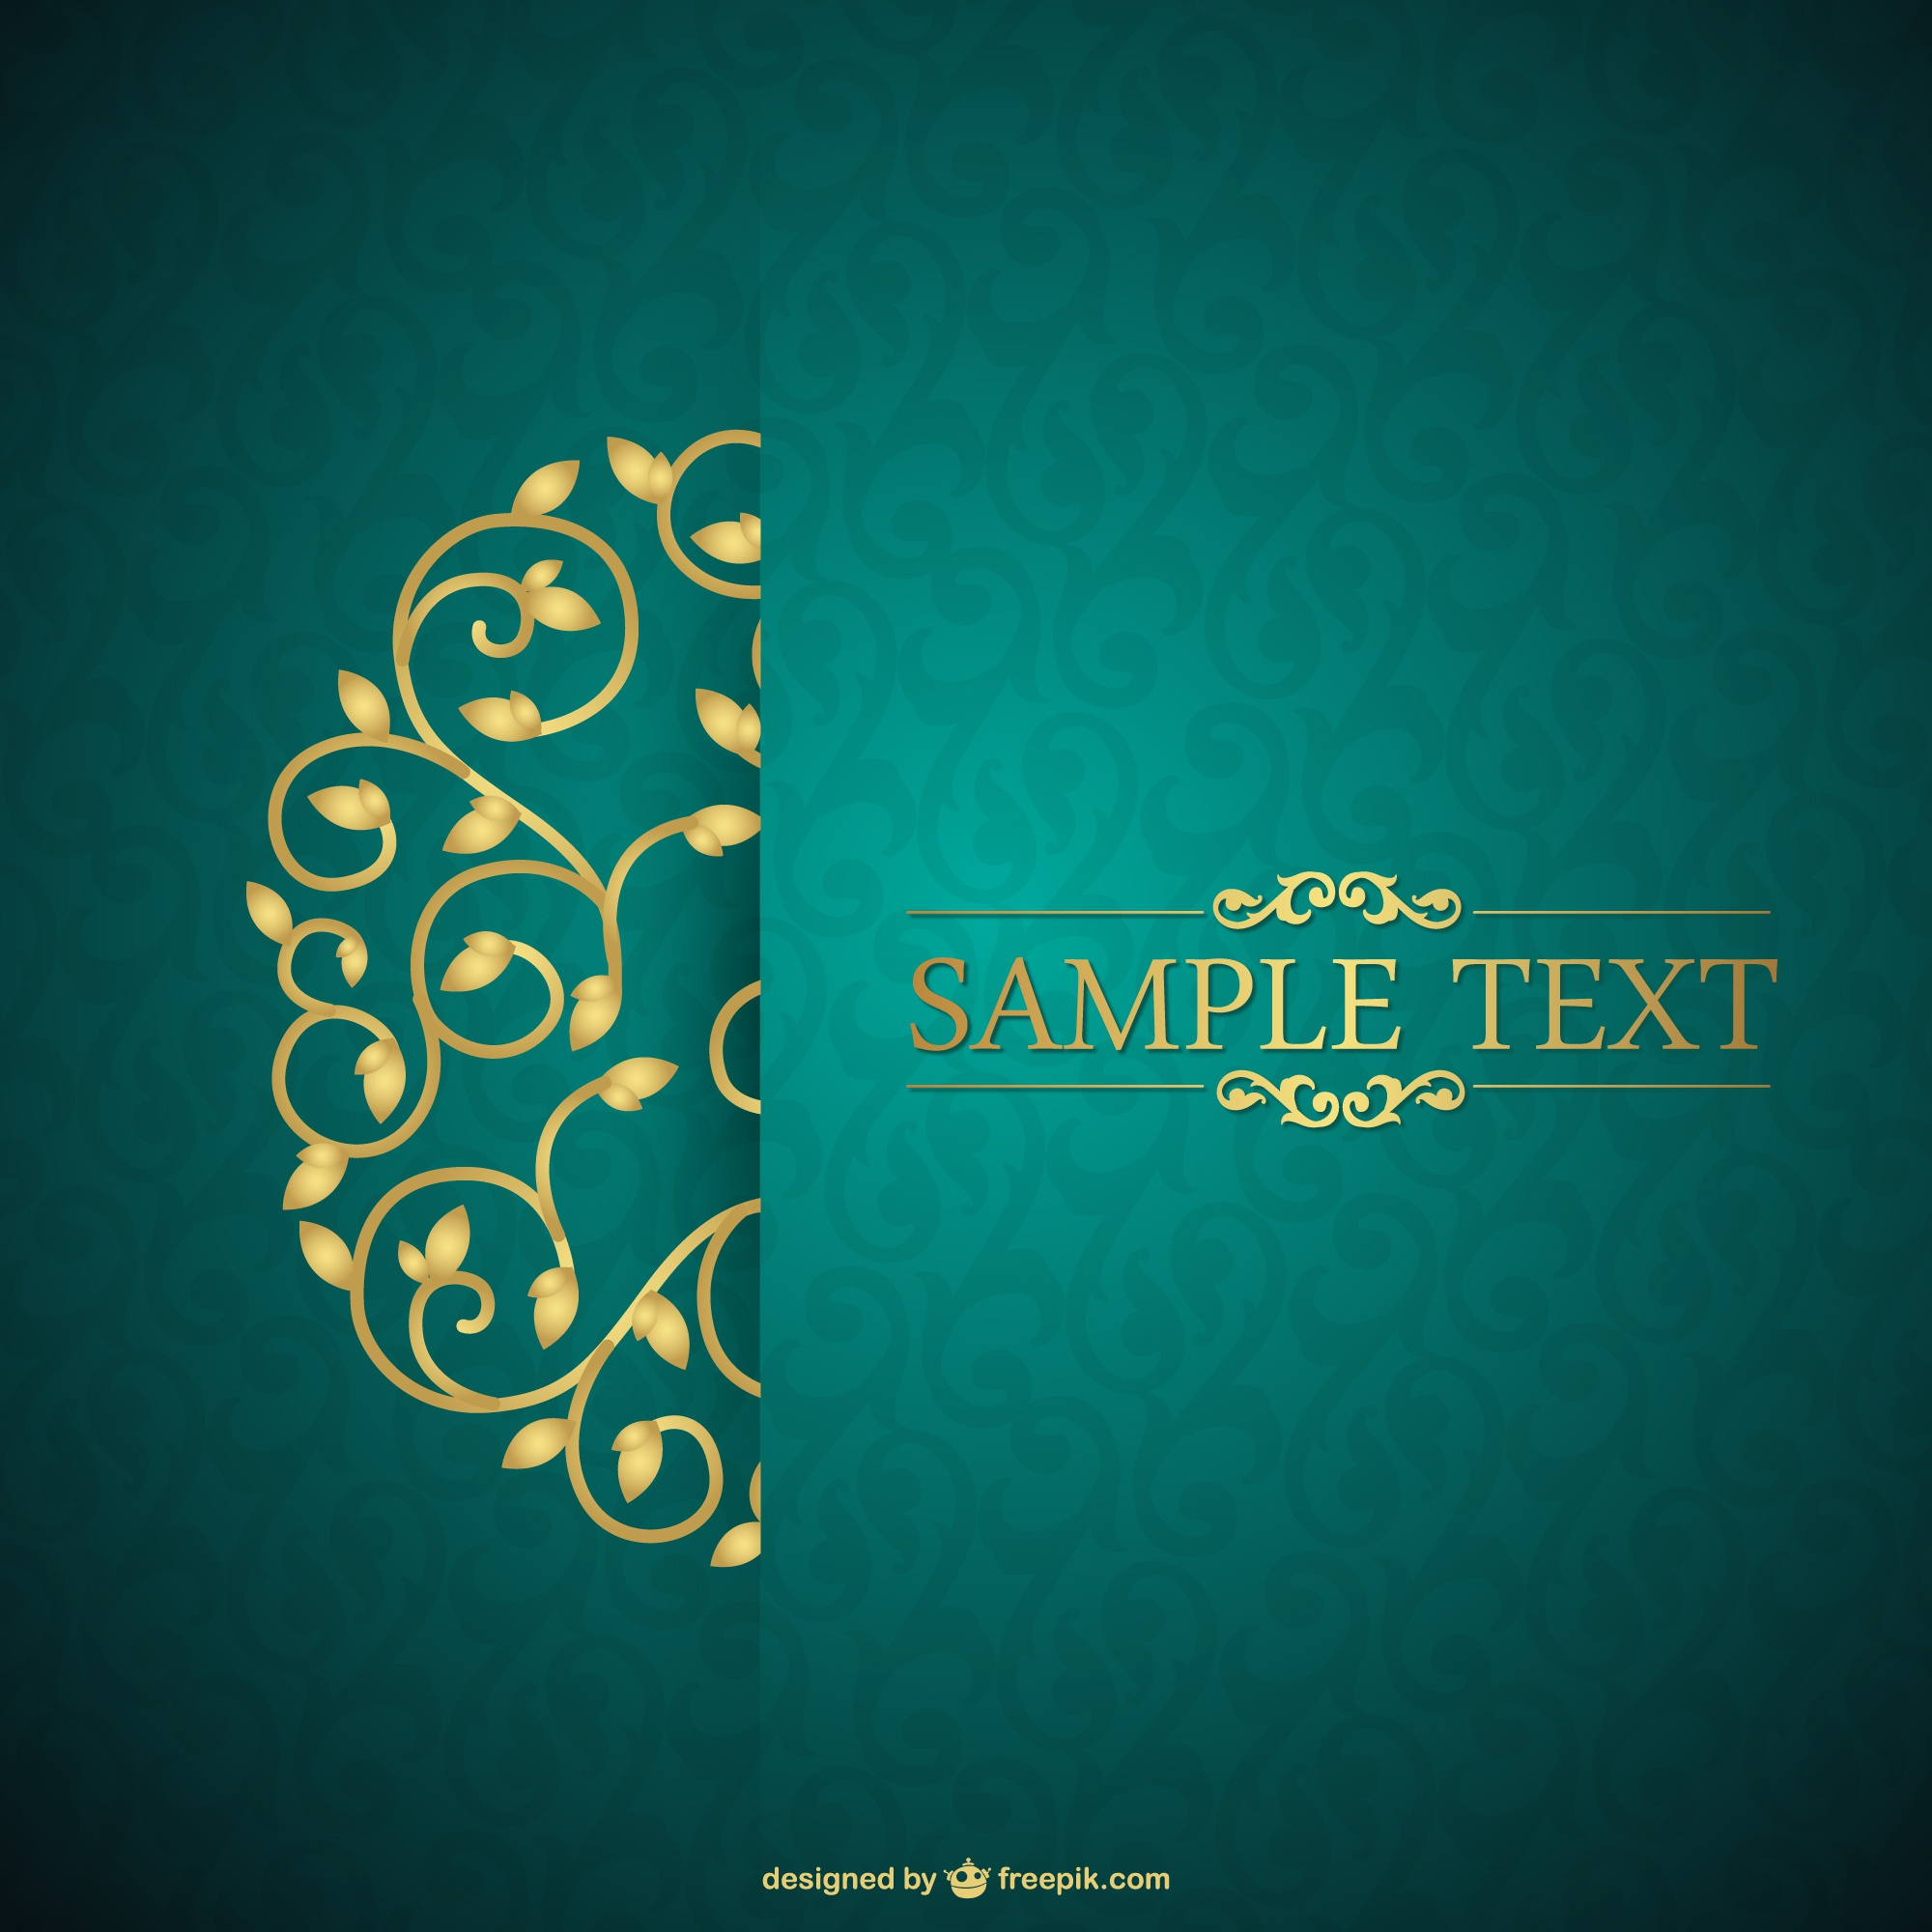 Retro card floral template free for download